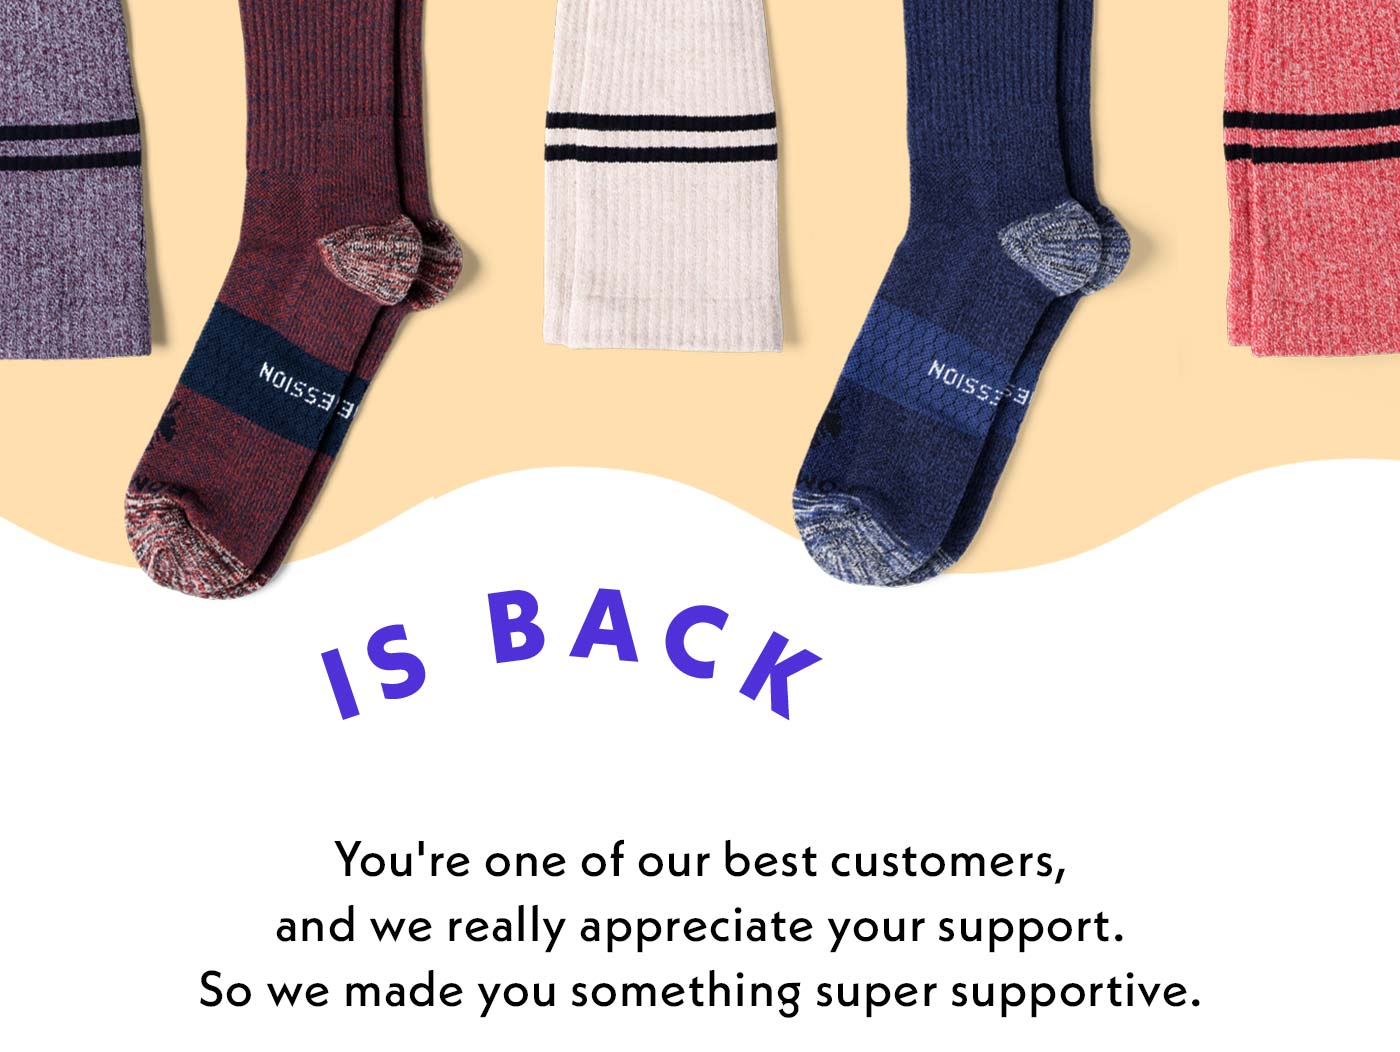 Is Back | You're one of our best customers, and we really appreciate your support. So we made you something super supportive.